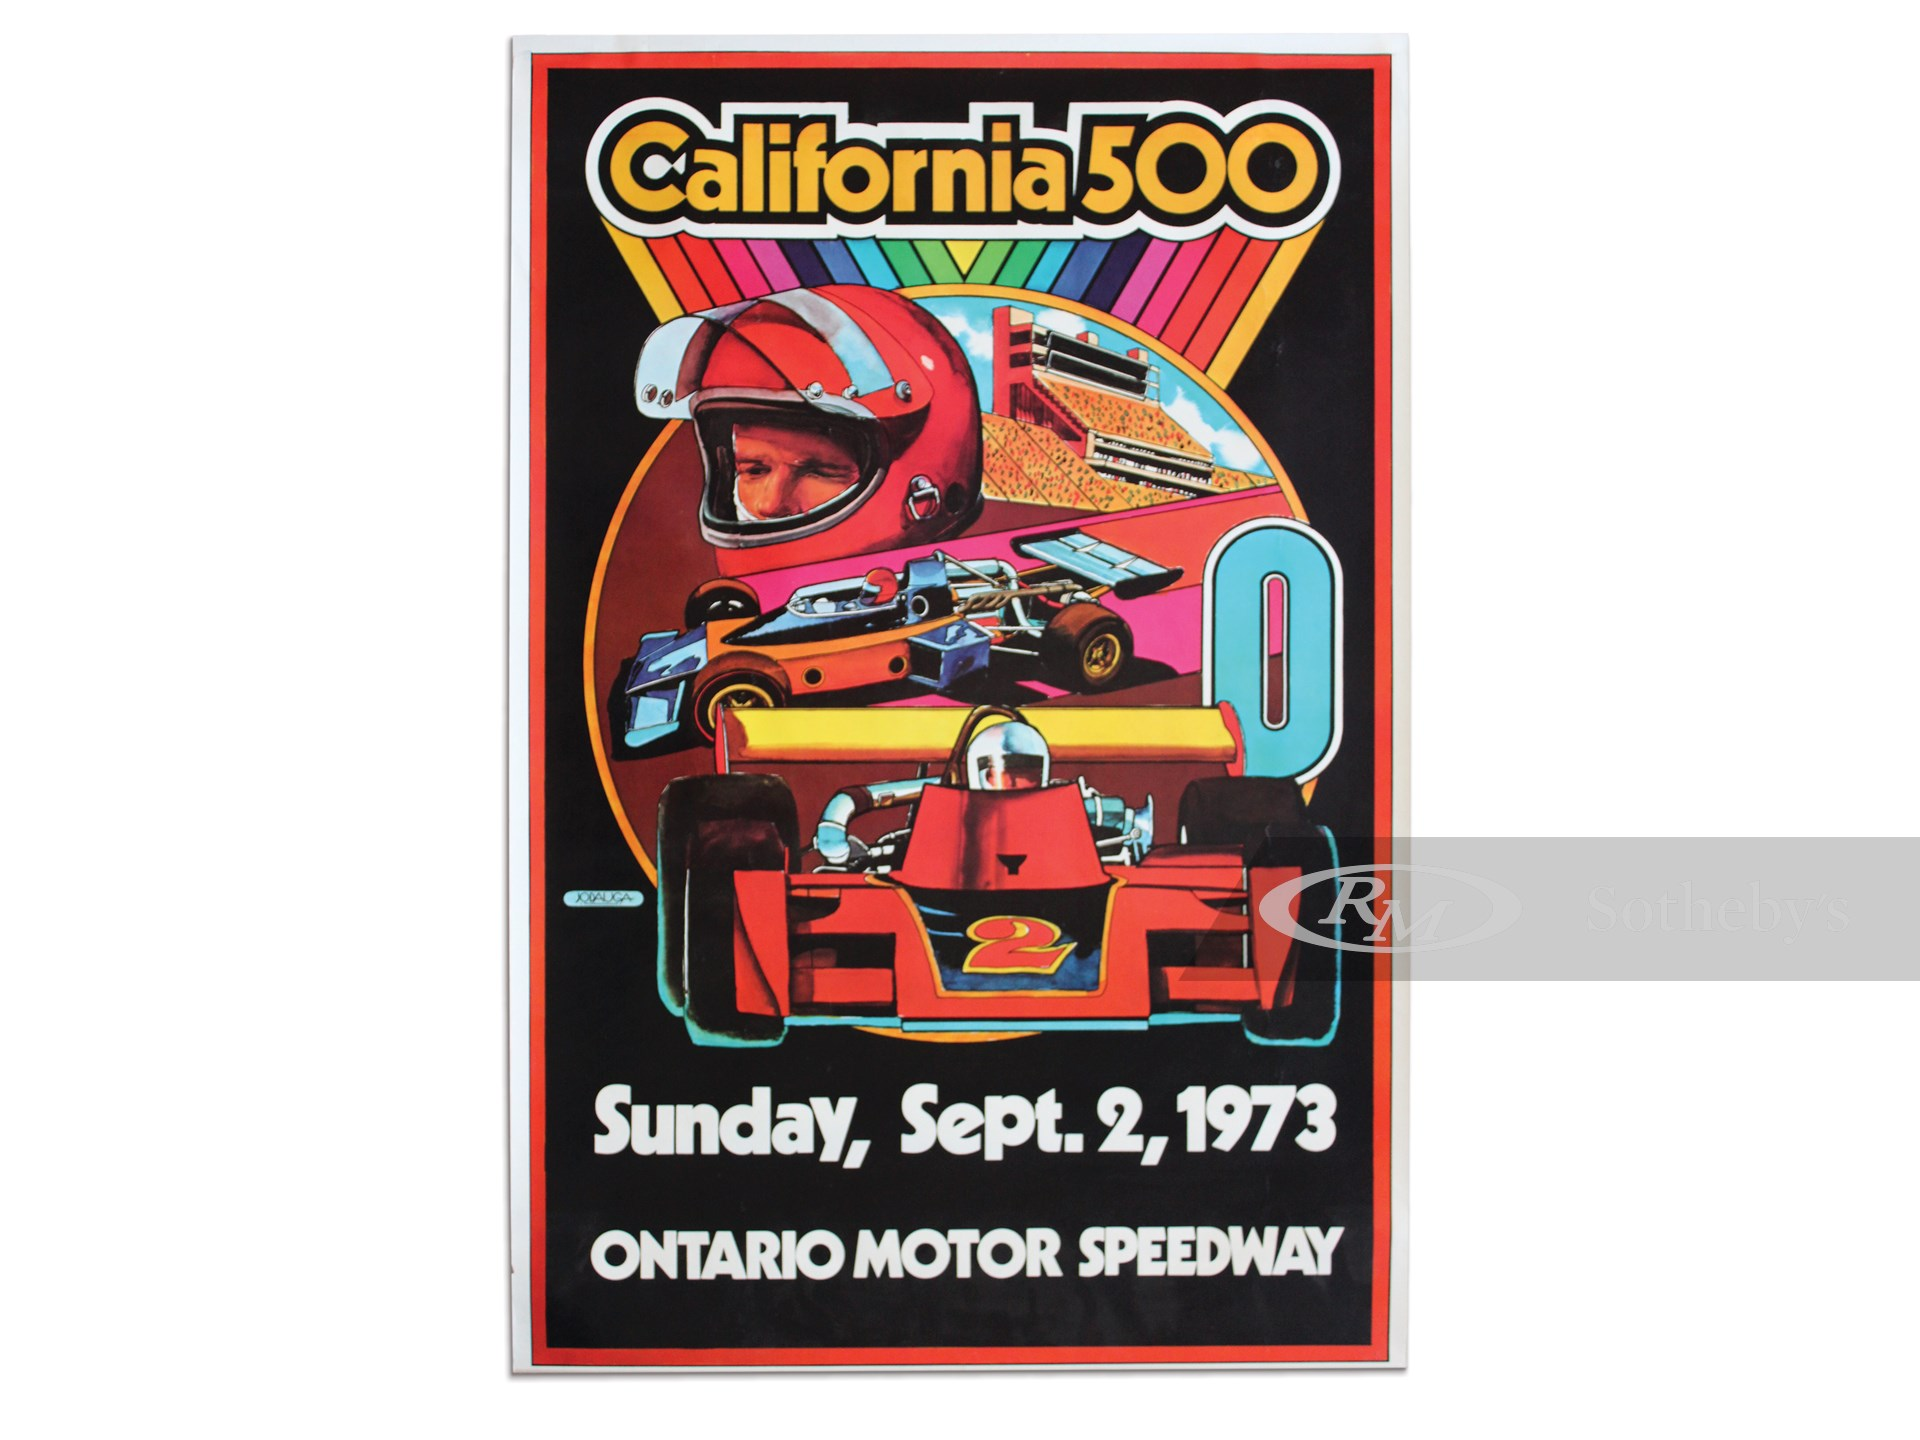 """California 500 Sunday, Sept. 2, 1973"" Ontario Motor Speedway Vintage Event Poster -"